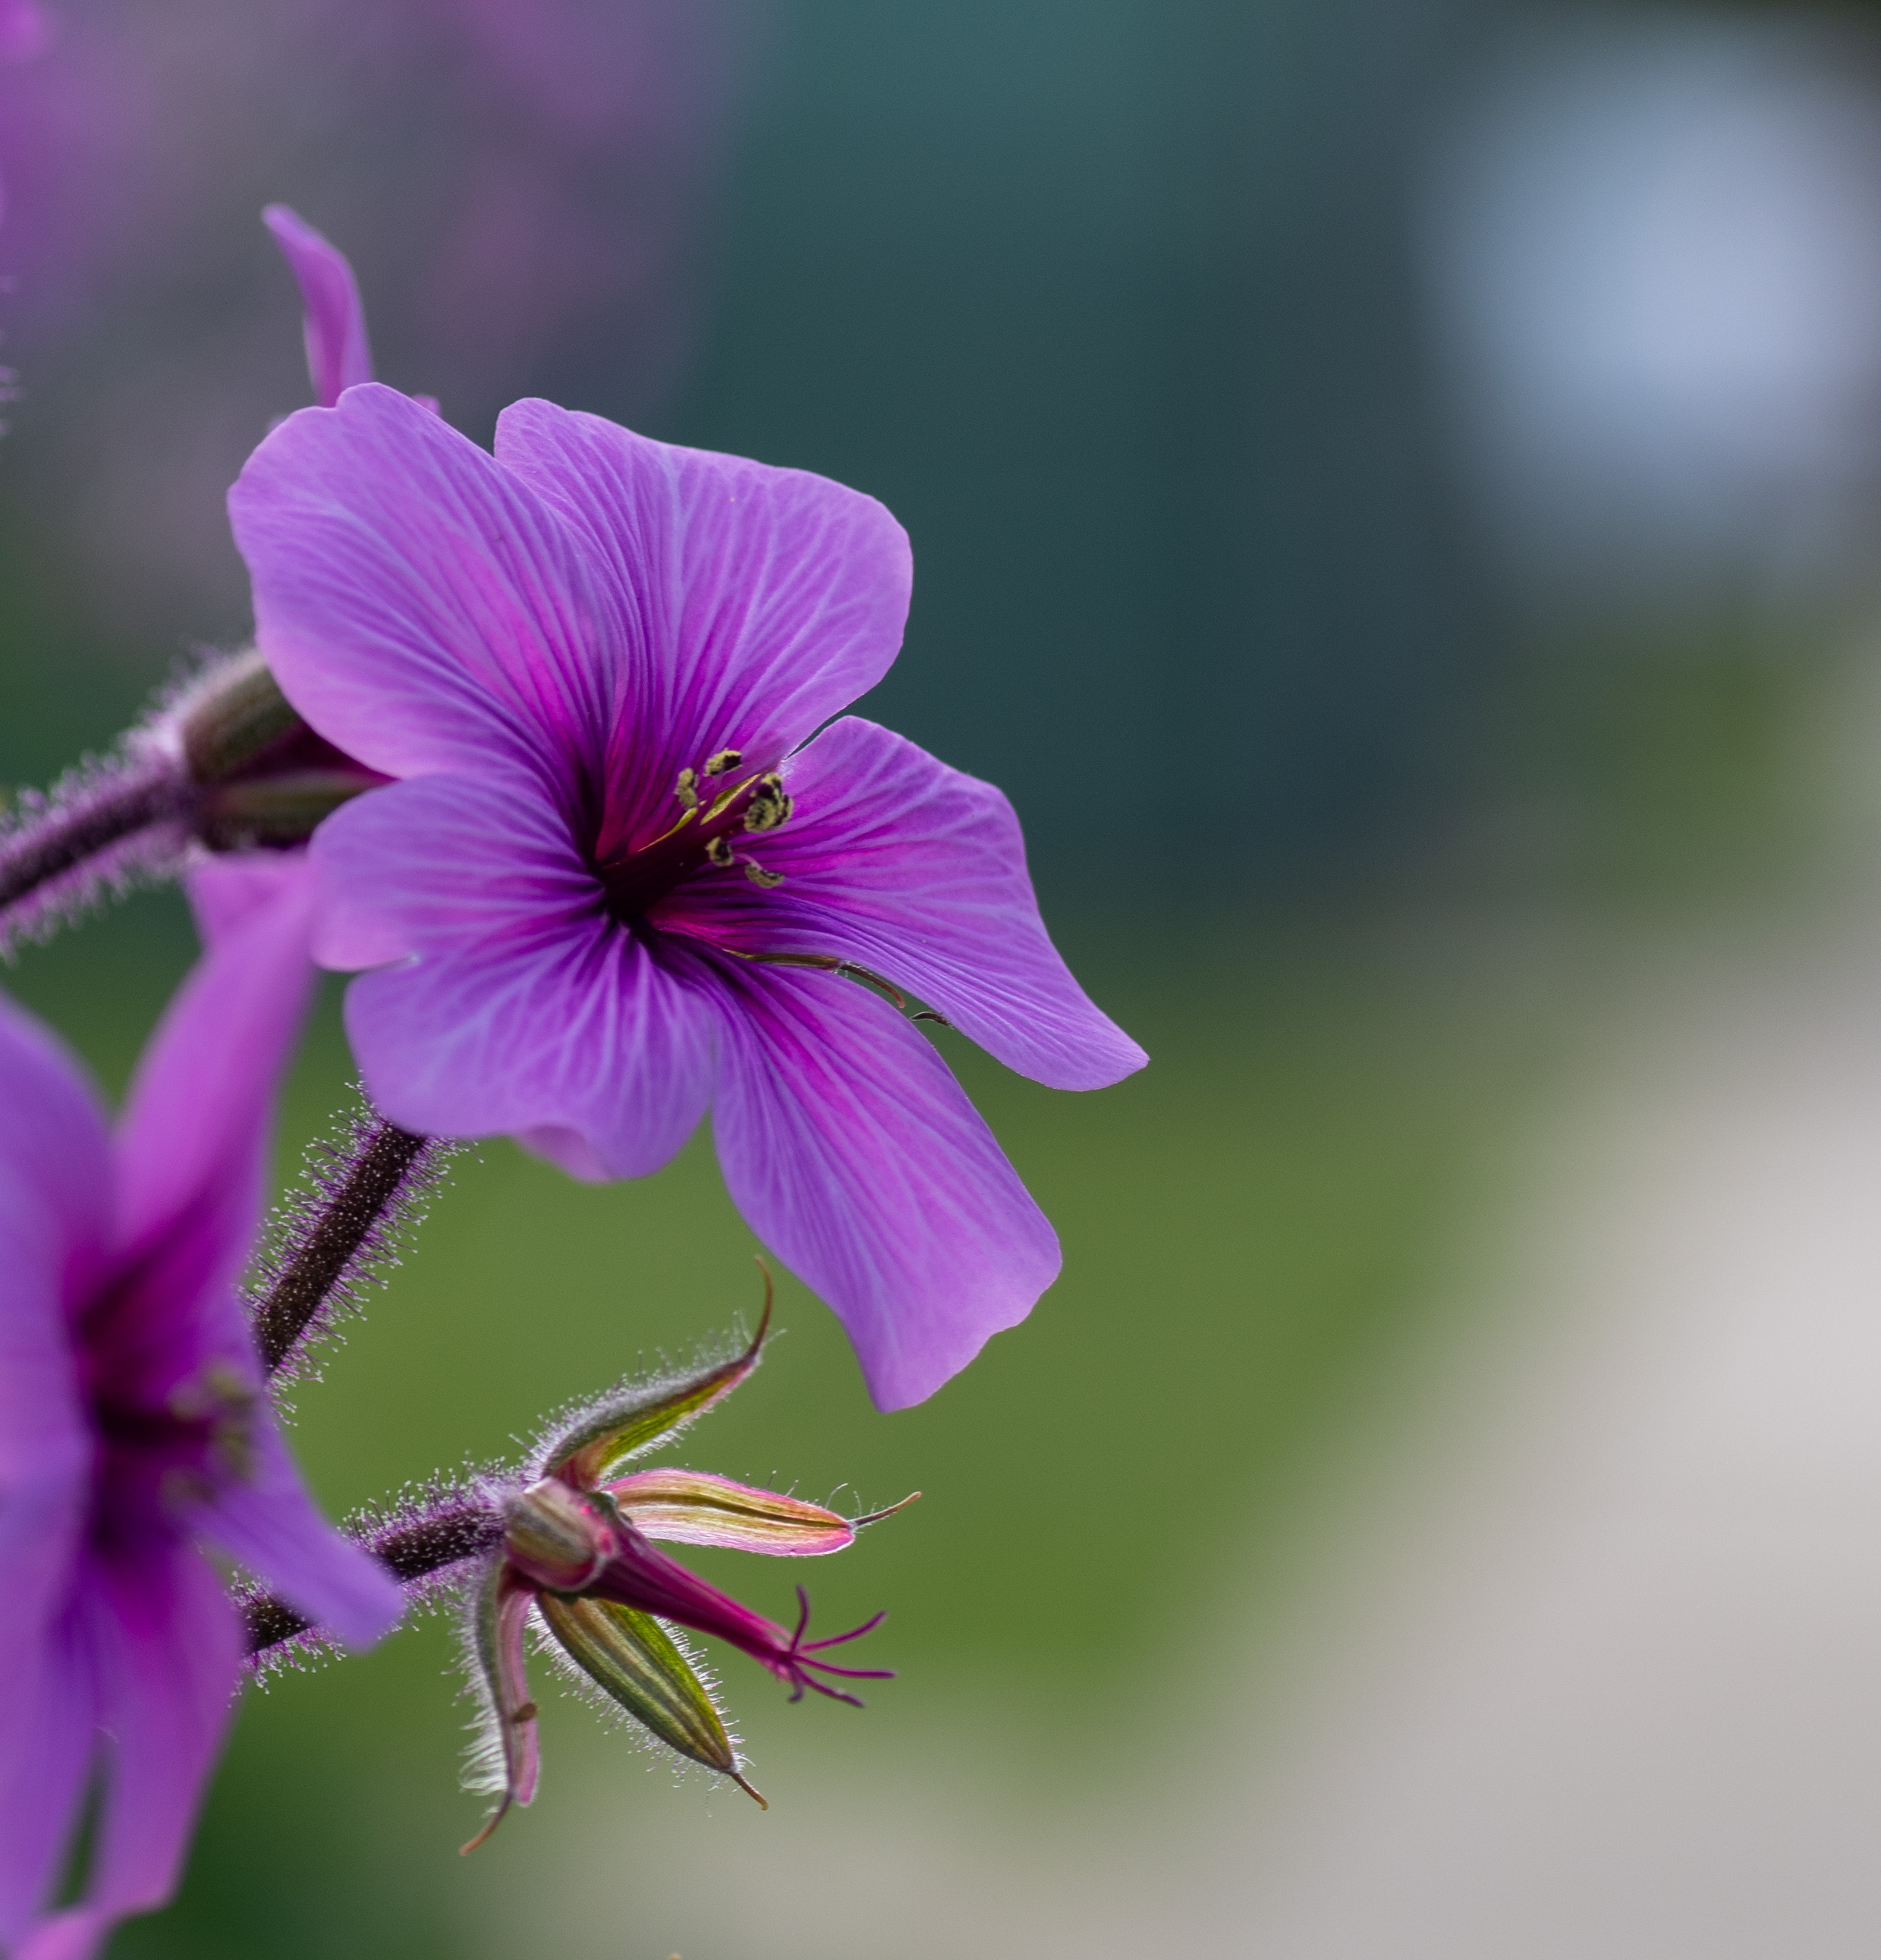 An image of a purple flower